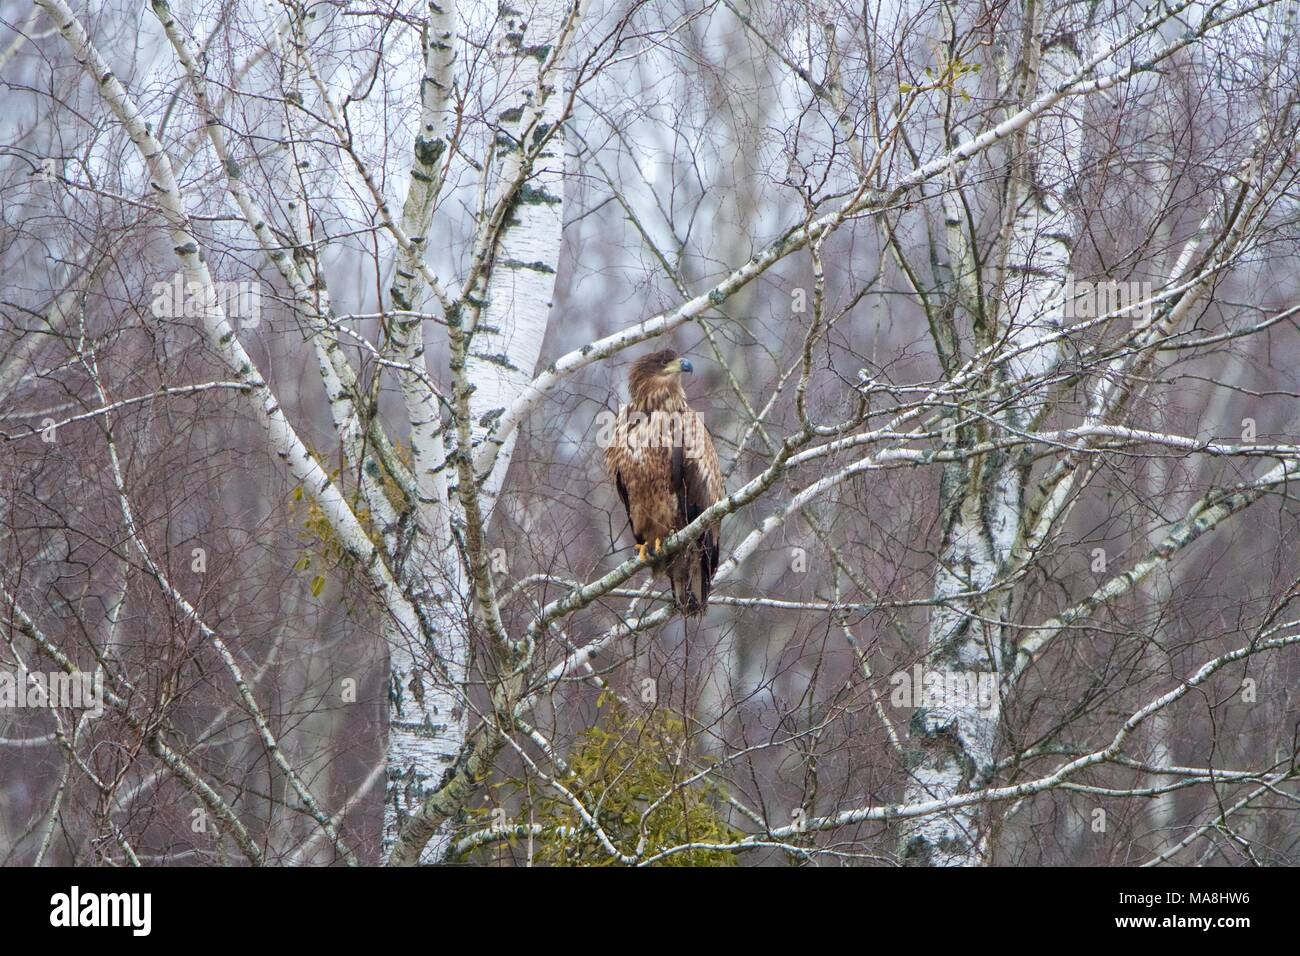 A White-tailed Sea-eagle perched in a birch tree, in winter, in Bialowieza Forest, Poland Stock Photo